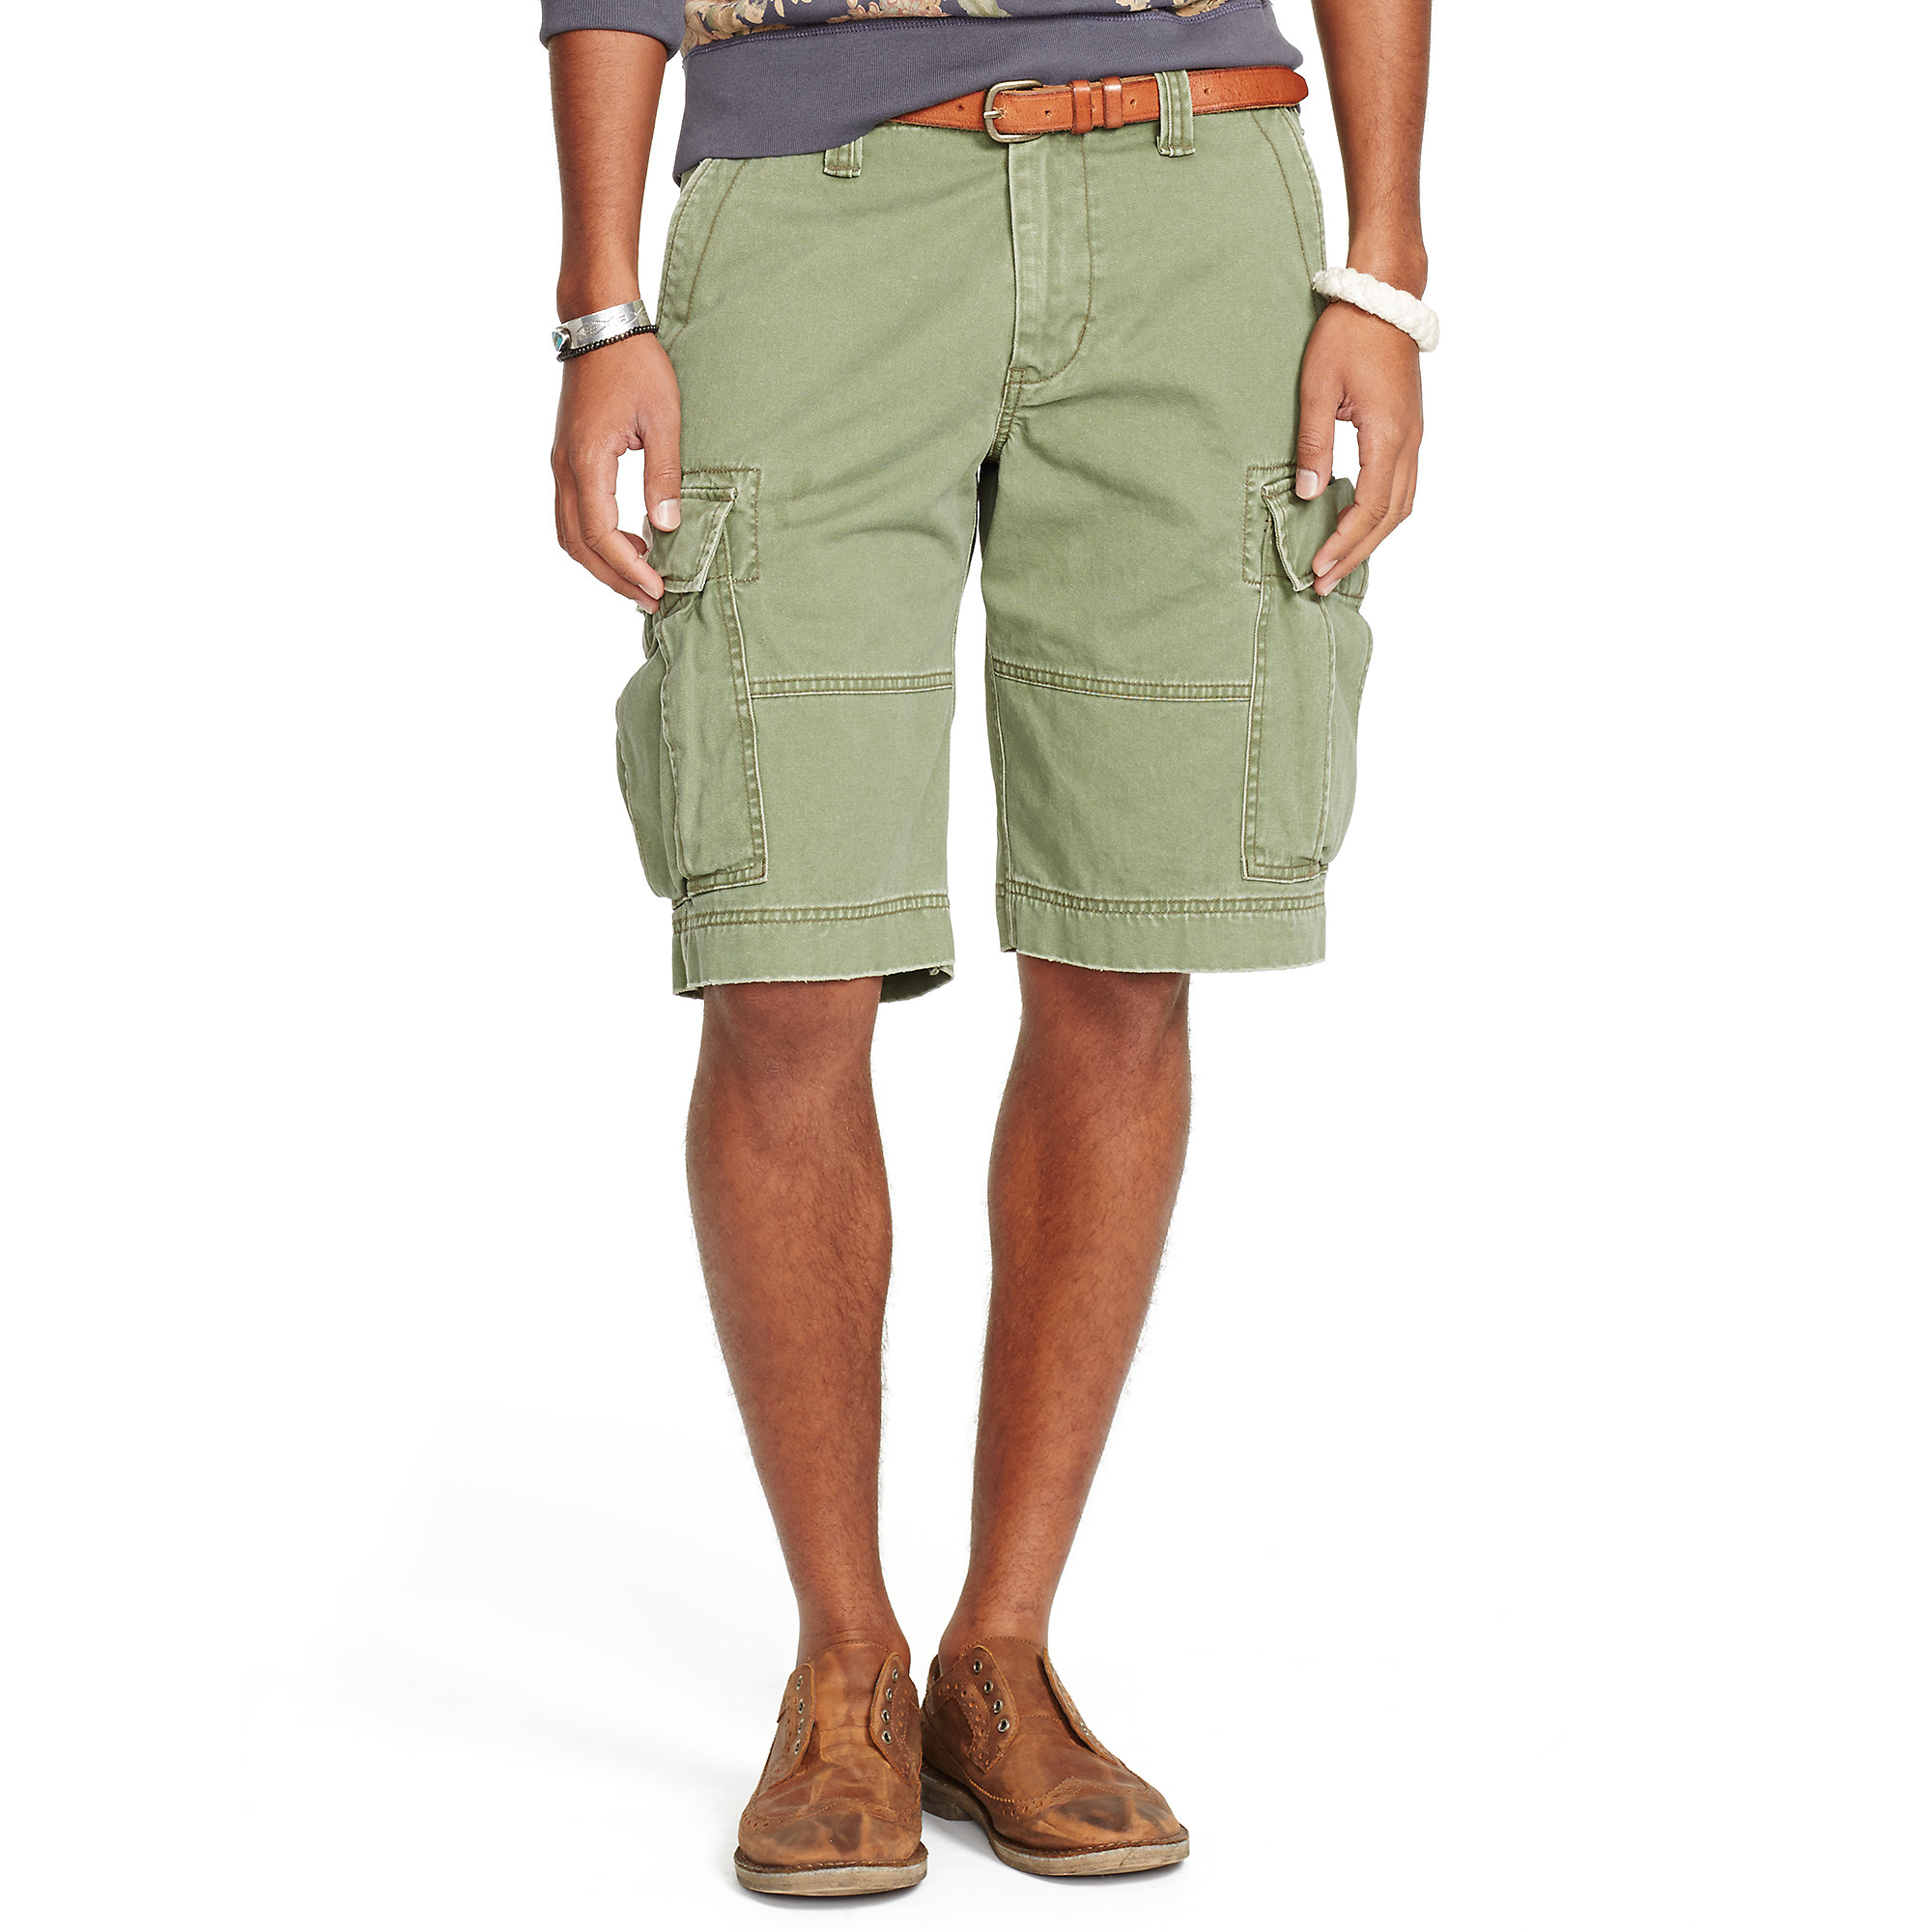 7daa7e3a8 Denim   Supply Ralph Lauren Chino Cargo Short in Green for Men - Lyst